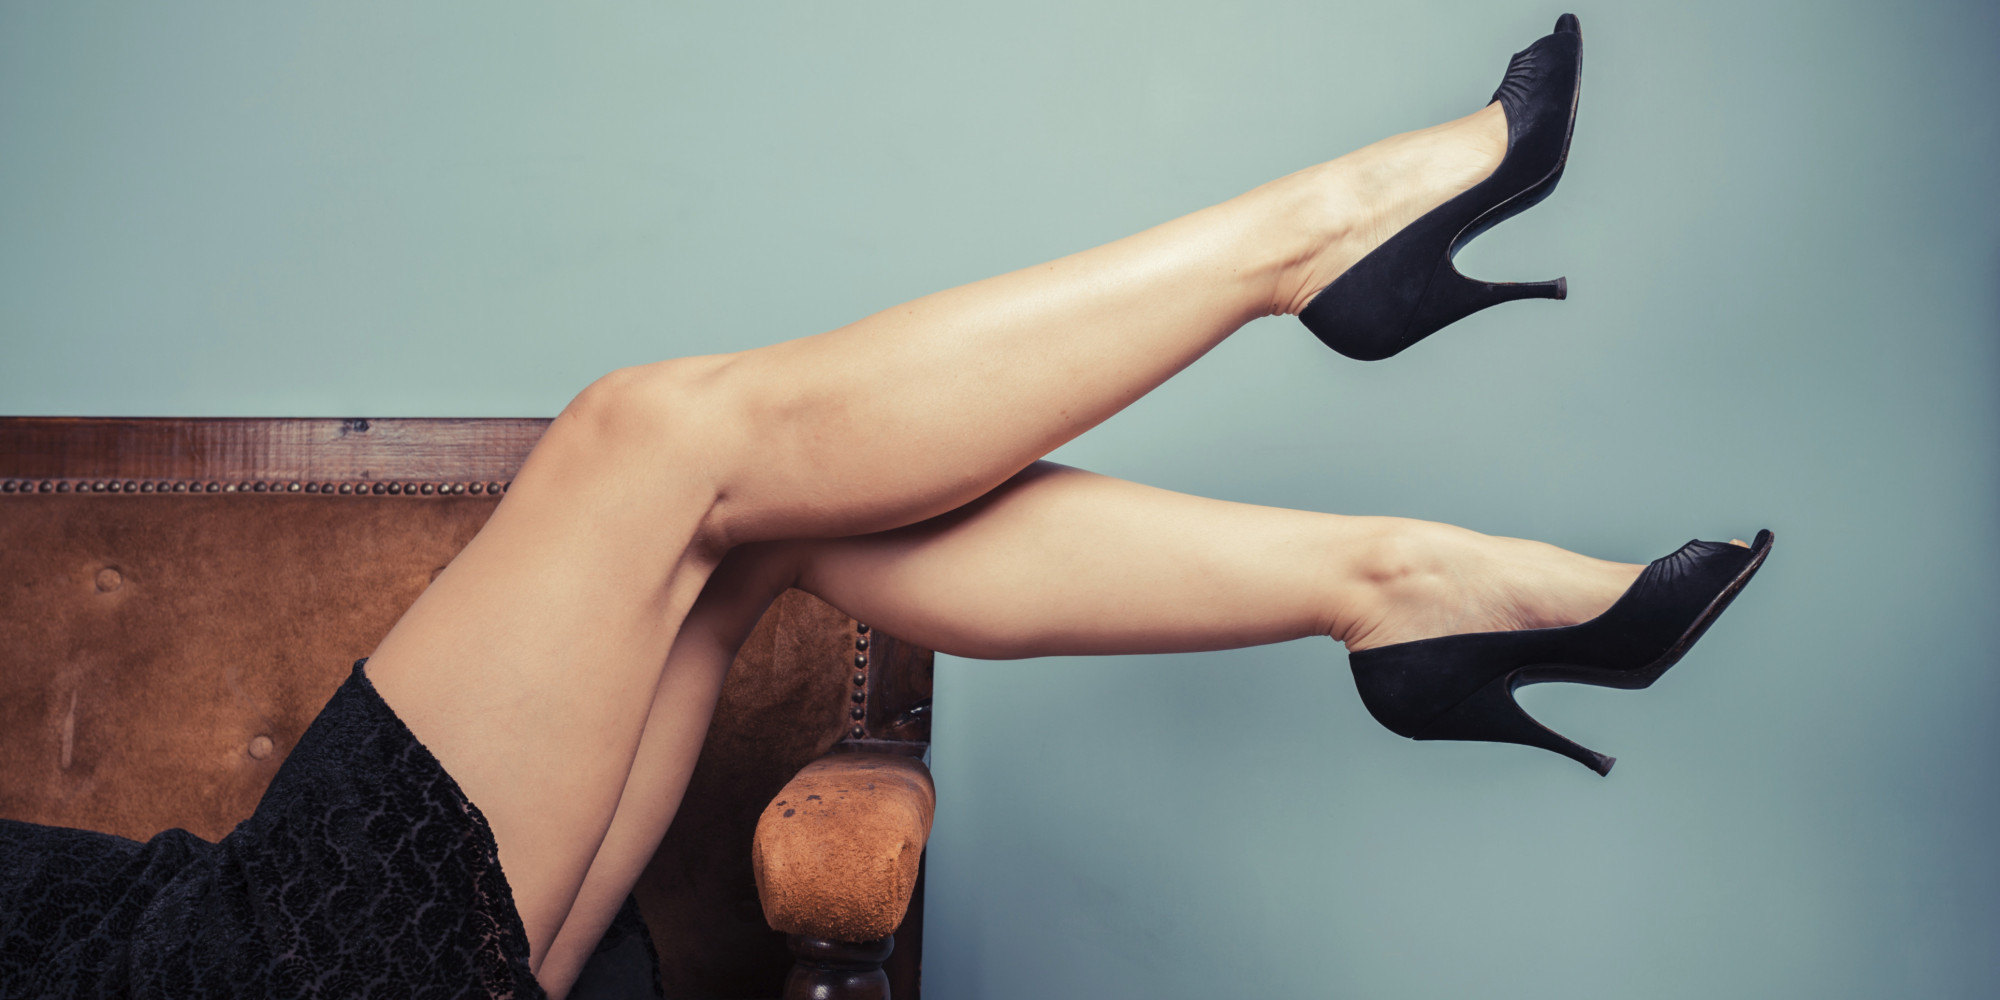 how to avoid foot slipping in heels